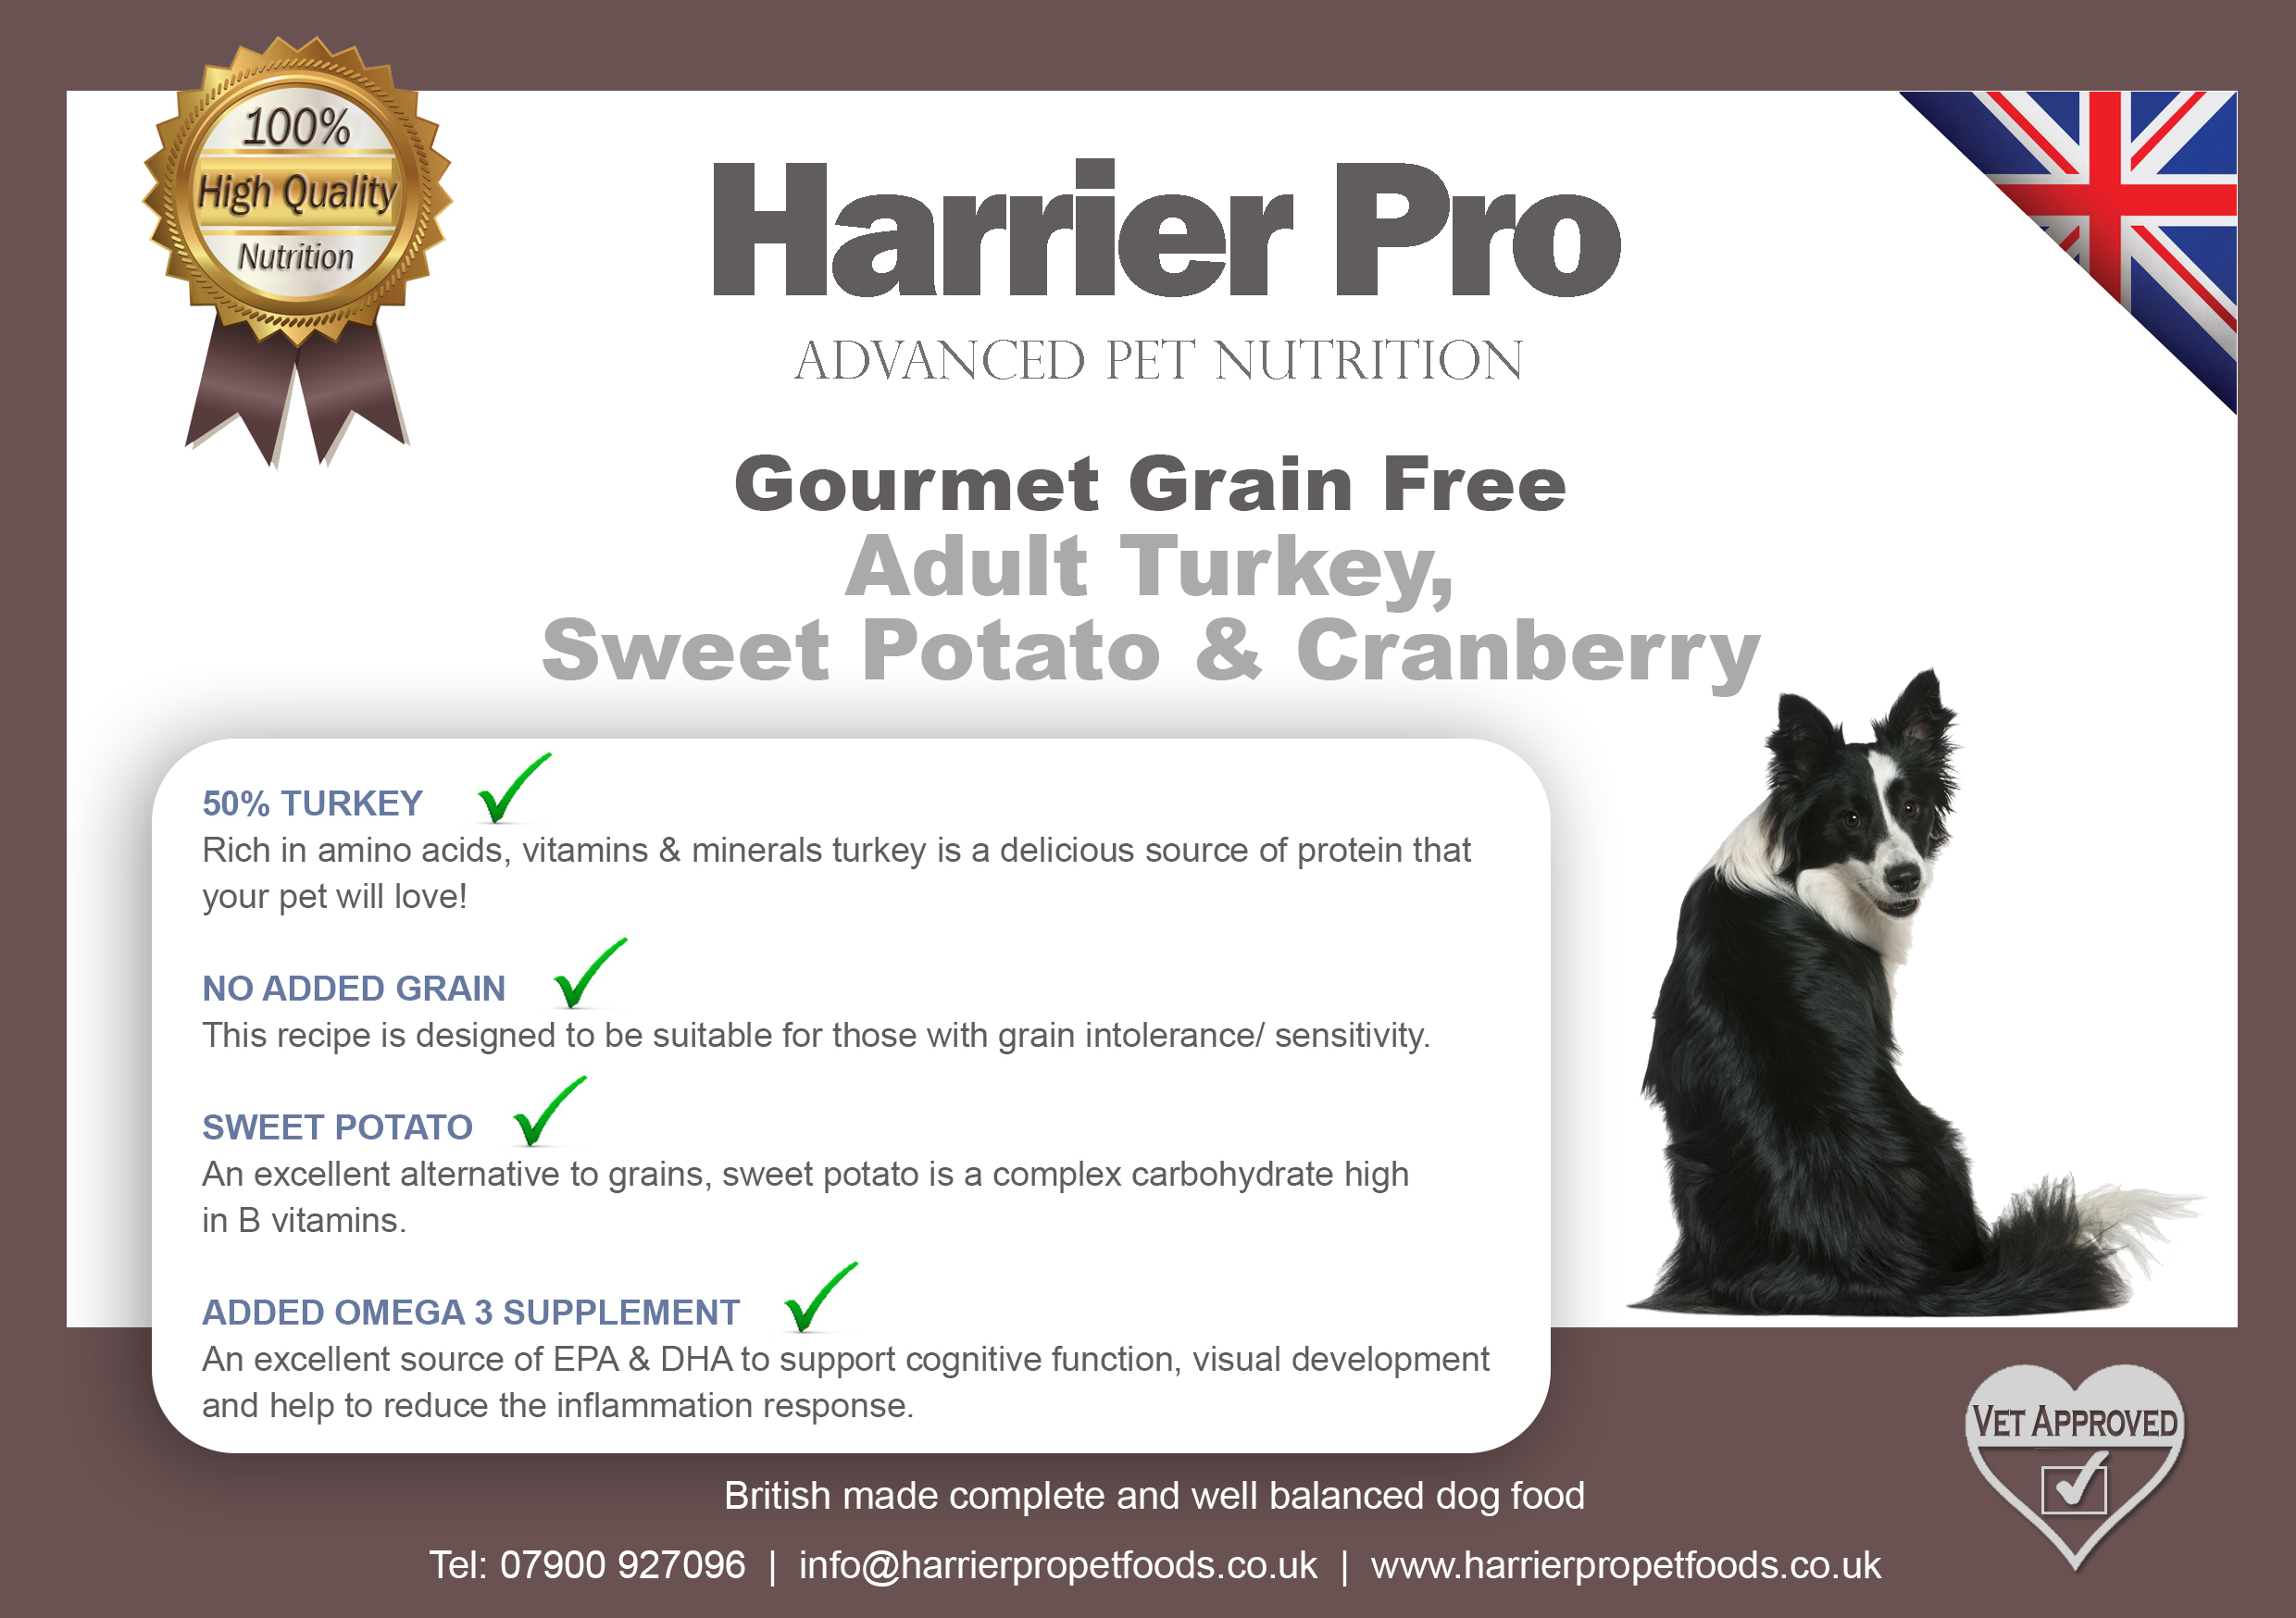 Our increasingly popular Grain Free product full of